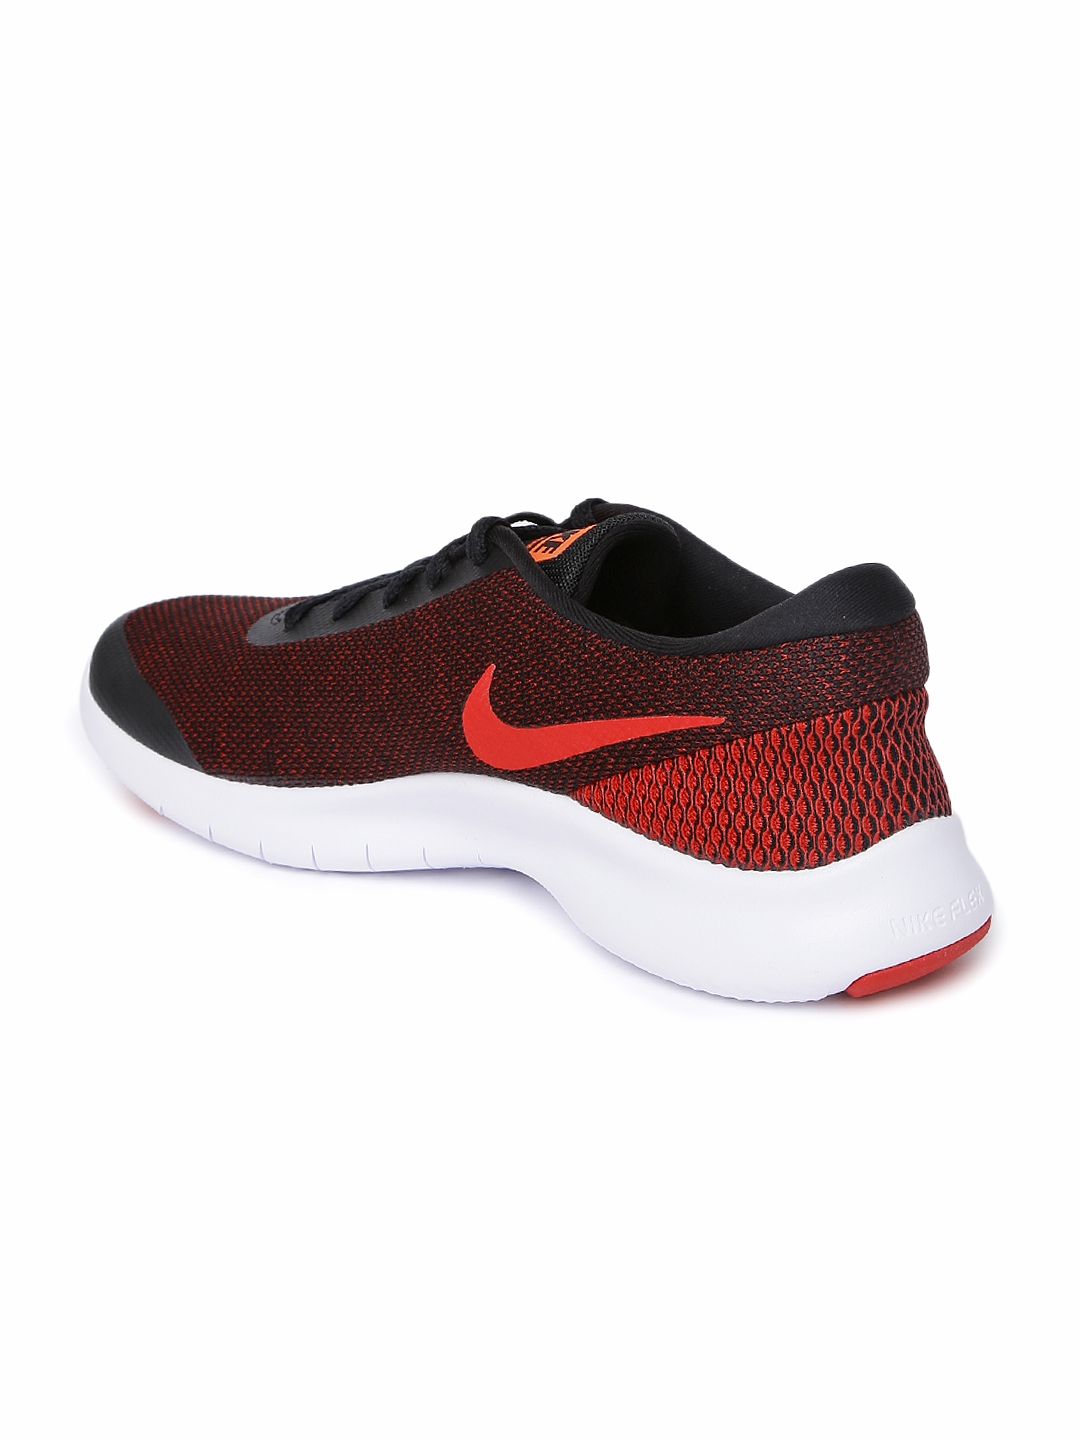 e0d61bc4ebec9 Buy Nike Men Maroon   Black FLEX EXPERIENCE RN 7 Running Shoes ...